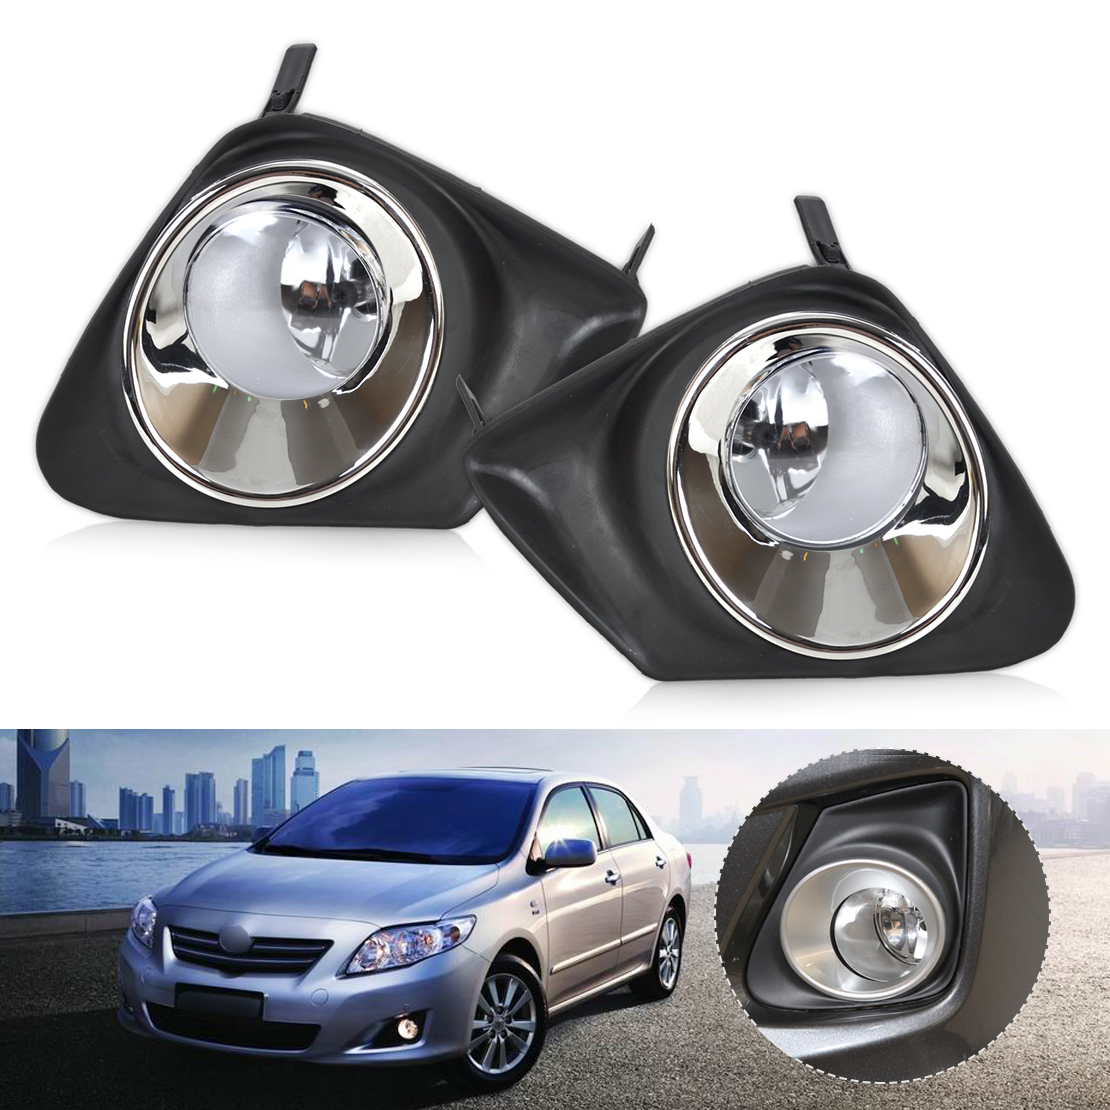 beler Front Bumper Right + Left Fog Light Lamp + Grille Cover Kit 81220-0D040 81220-0D041 for Toyota Corolla 2011 2012 2013 front lower left right bumper fog light grille cover fog light lamp kit set for honda accord 4door 1998 2002